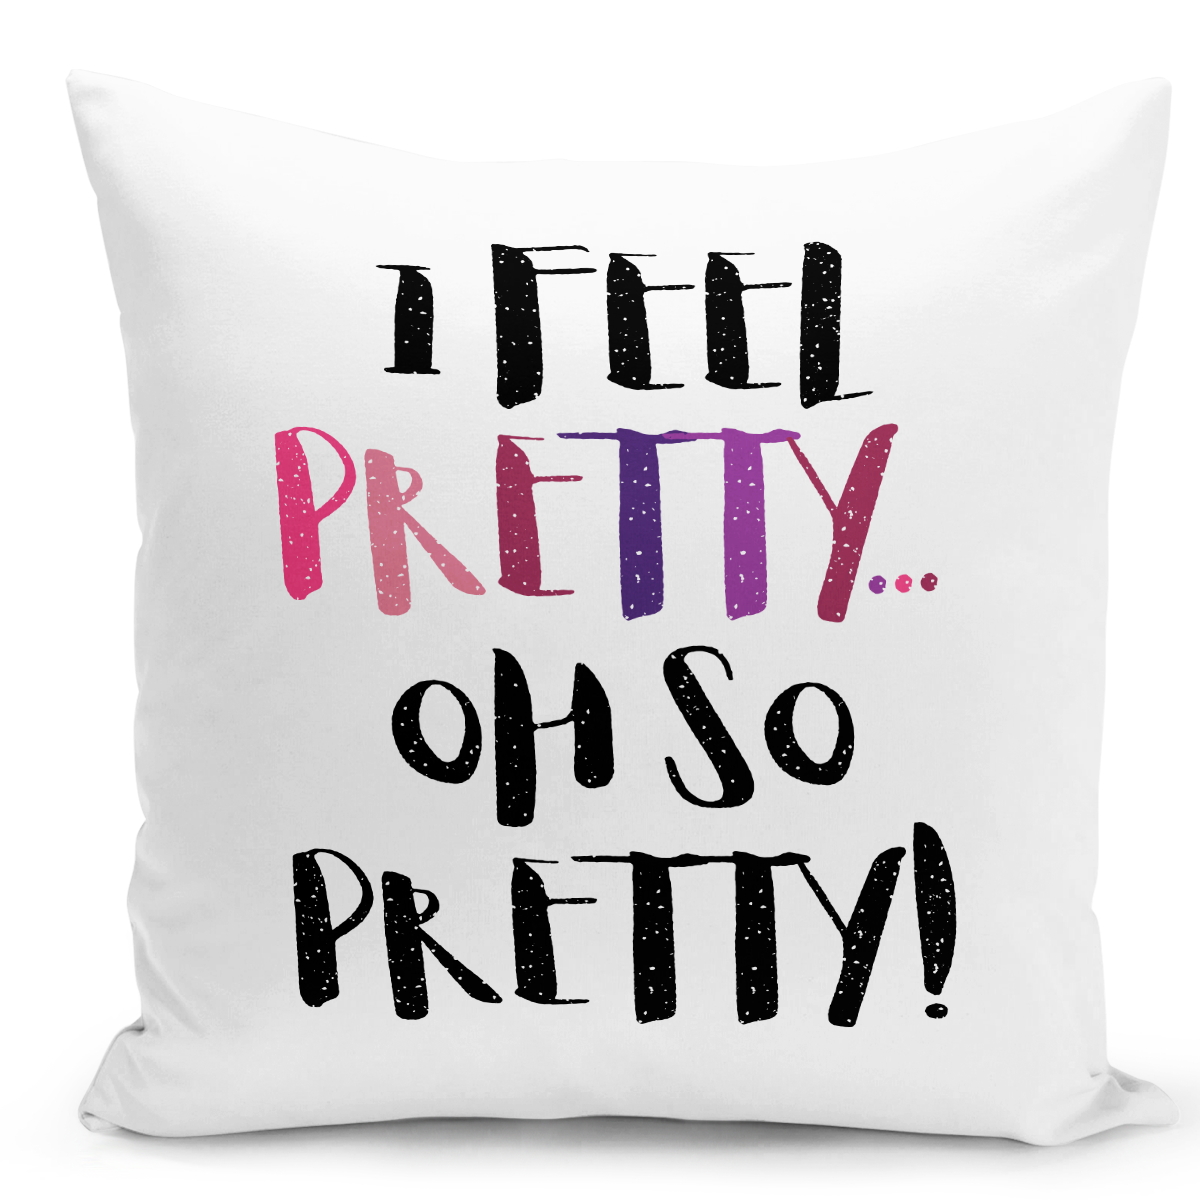 White-Throw-Pillow-i-Feel-Pretty-Oh-So-Pretty-Girls-Pillow---Durable-White-16-x-16-inch-Square-Home-Accent-Pillow-Sofa-Cushion-